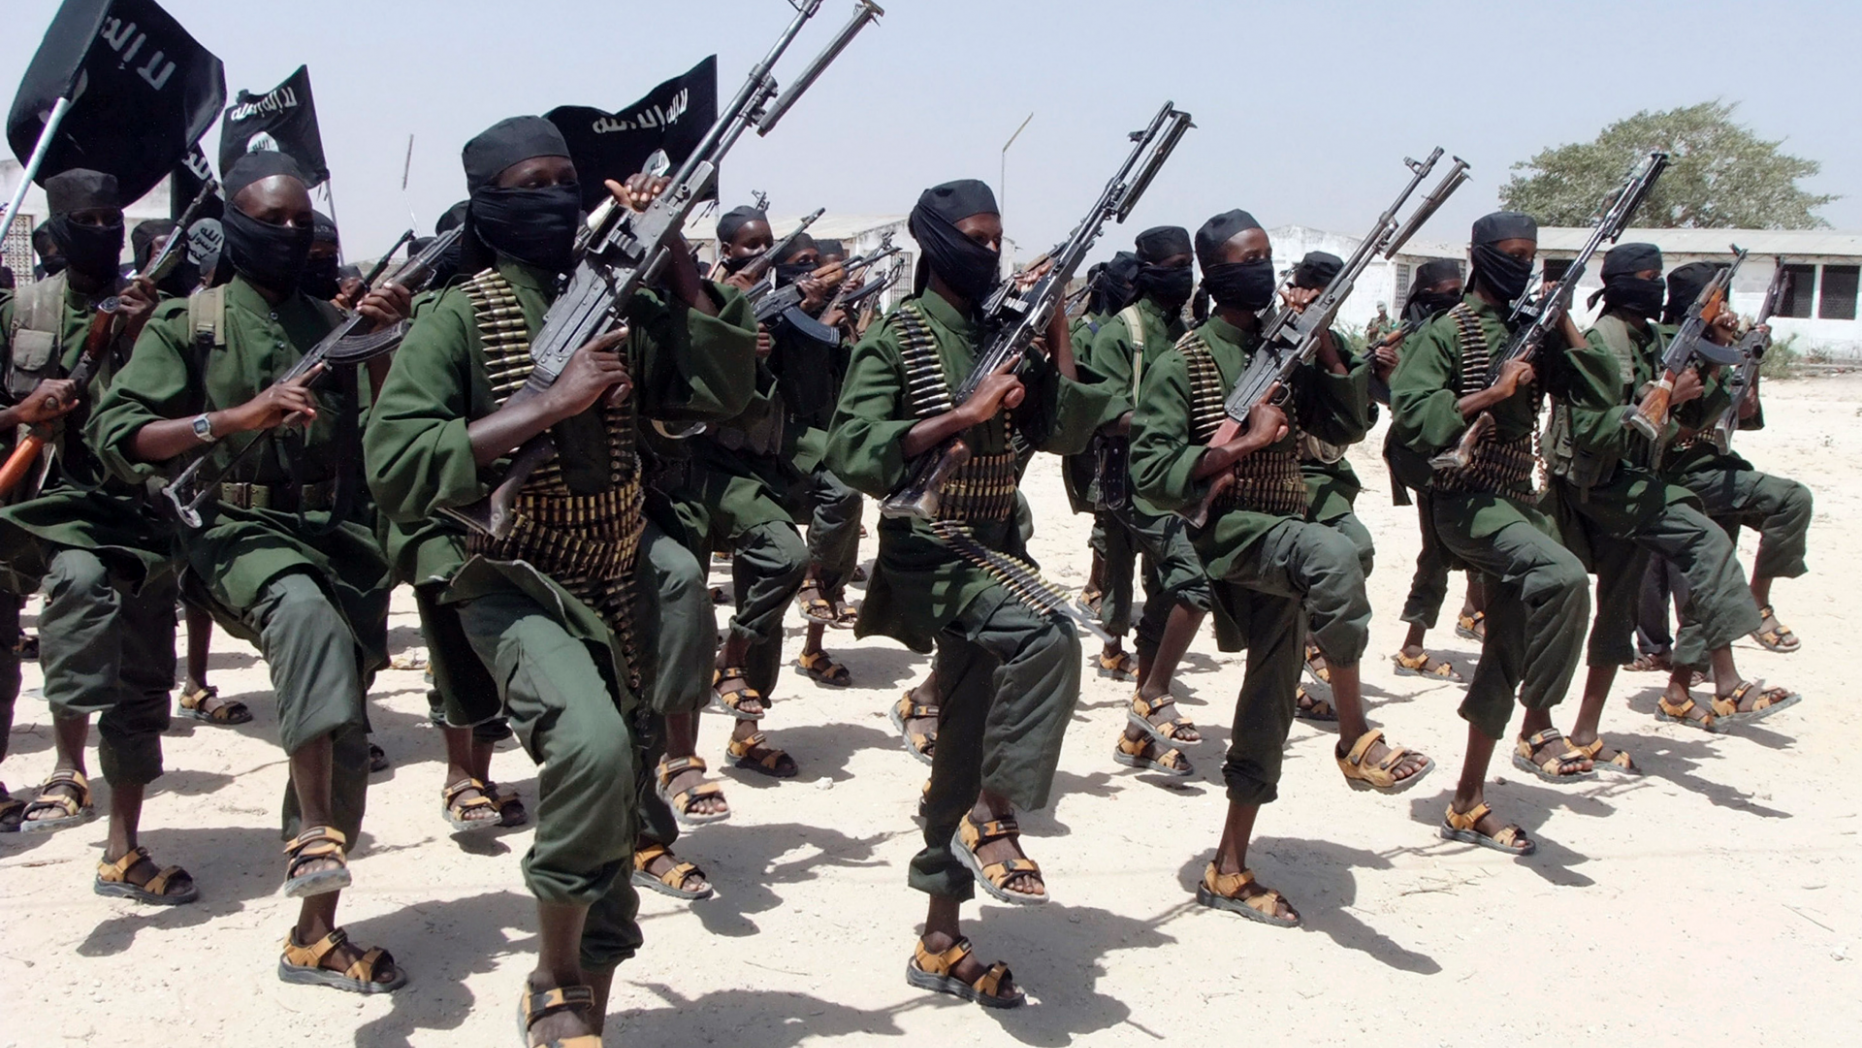 Hundreds of newly trained al-Shabab fighters